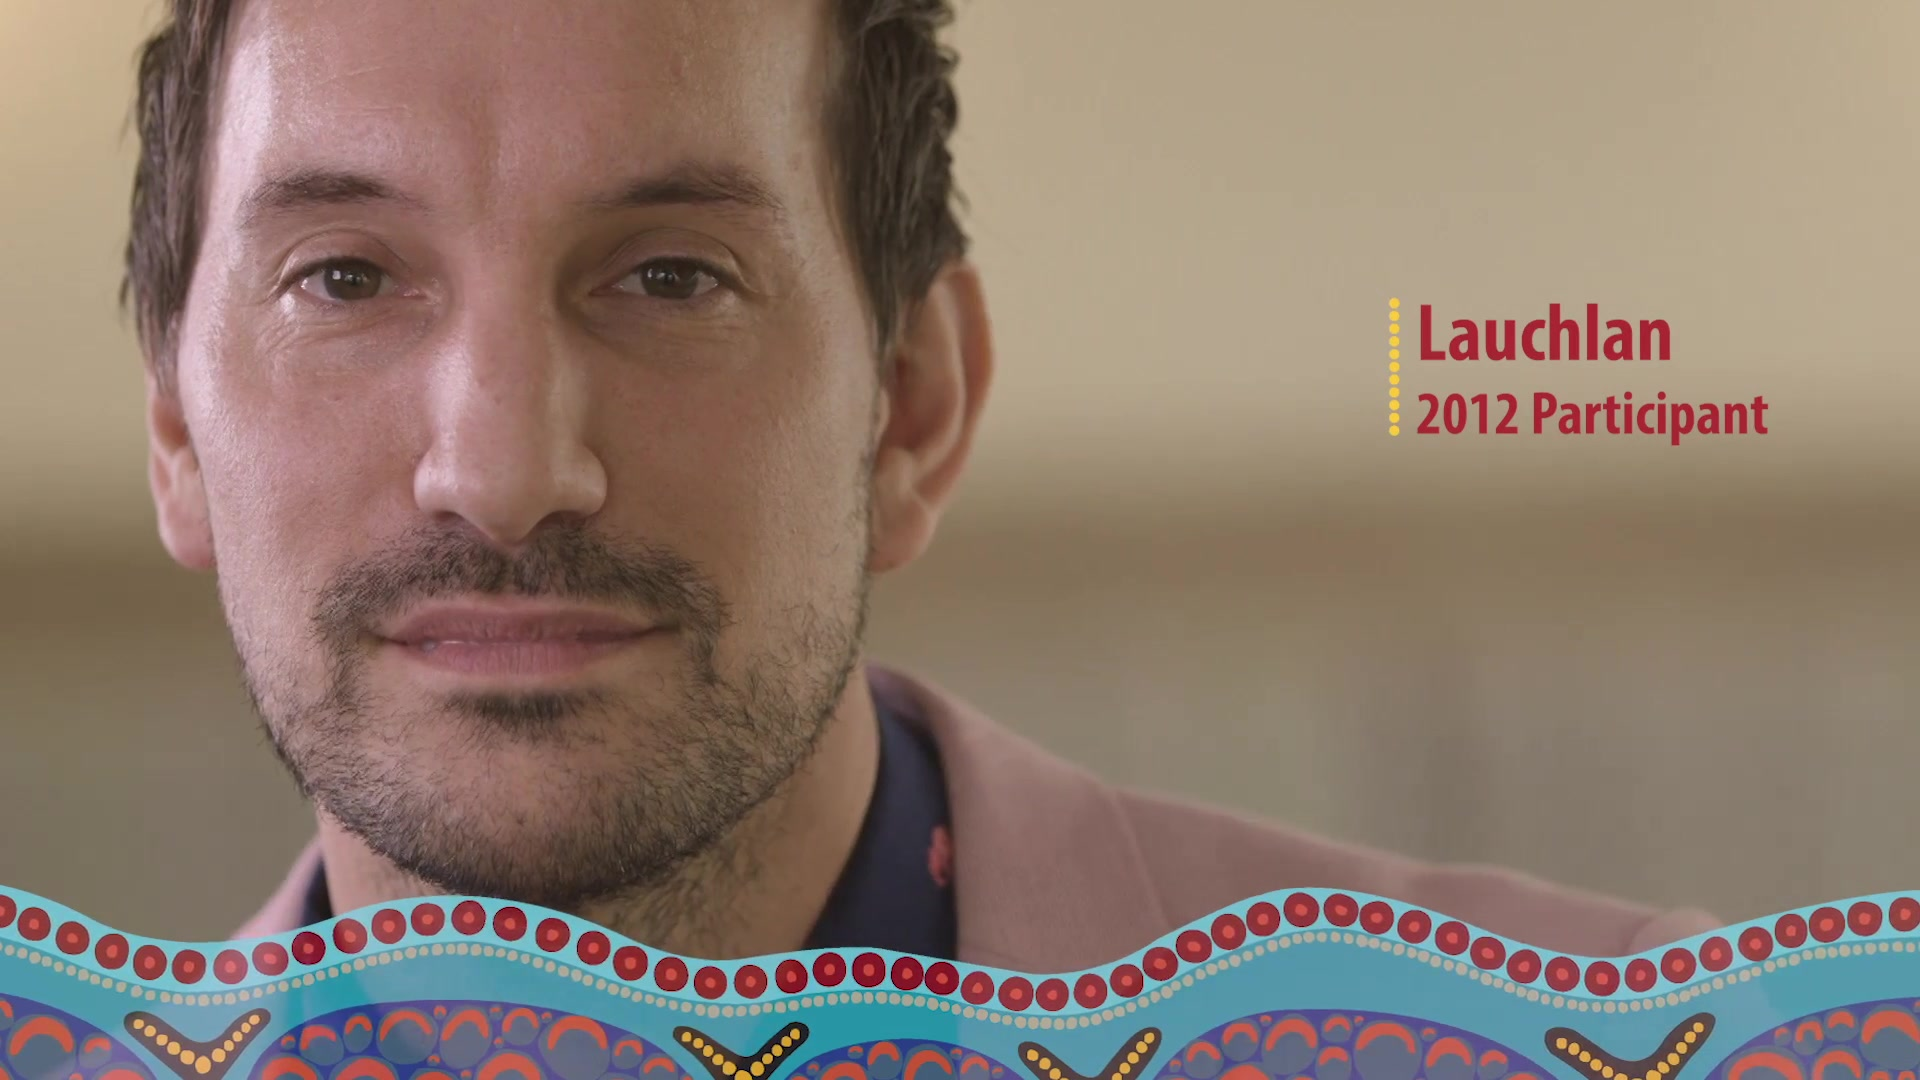 A still frame from the video IAGDP - Lauchlan